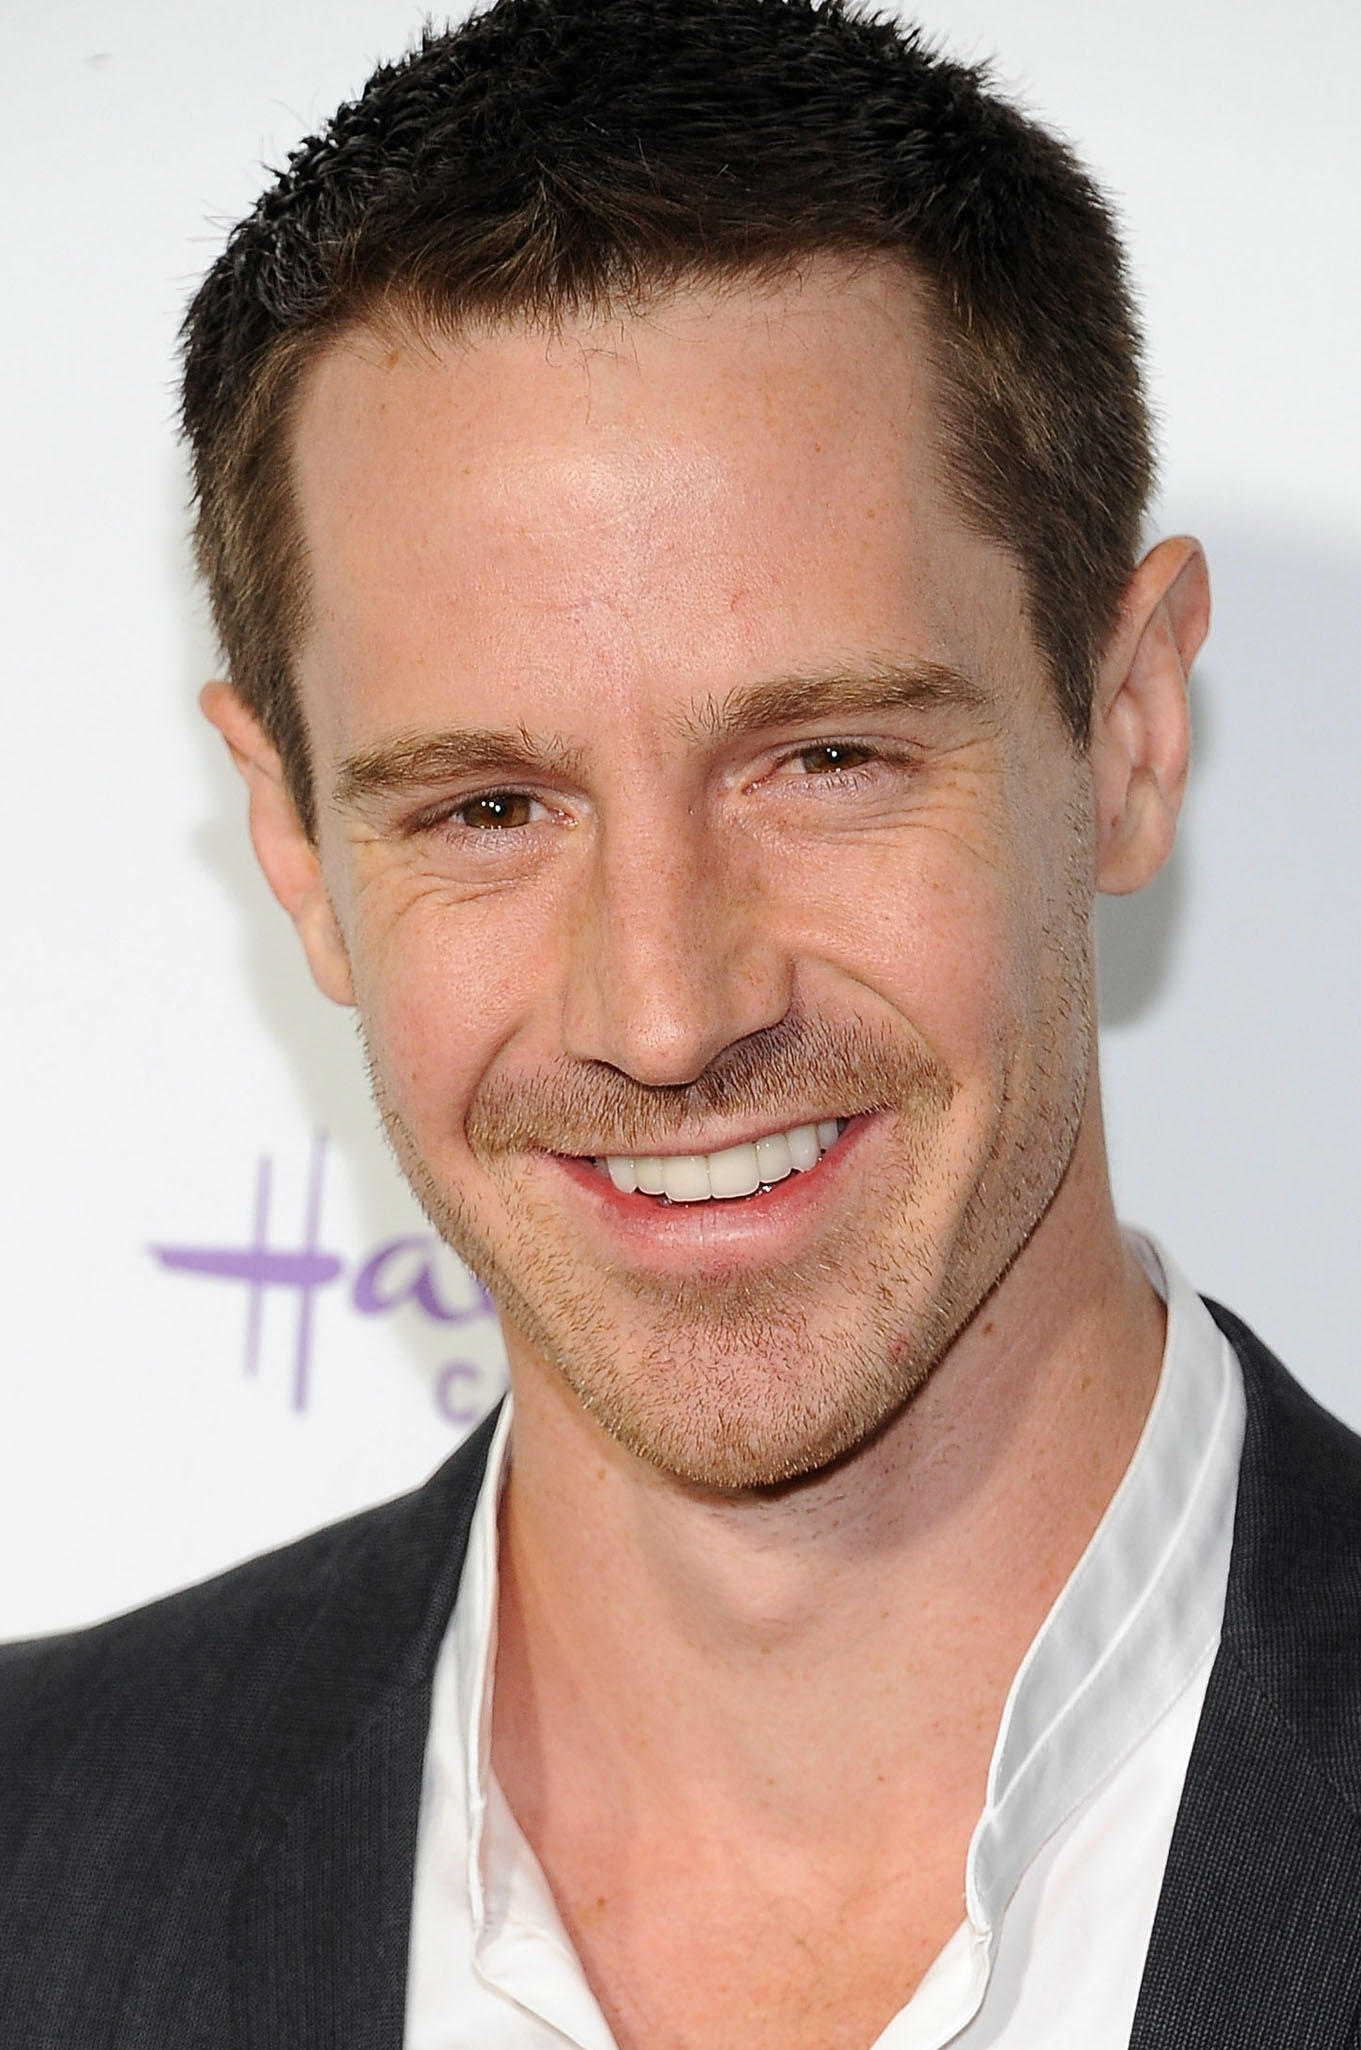 Jason Dohring at Hallmark Channel & Hallmark Movie Channel's 2015 Winter TCA party in Pasadena, California.